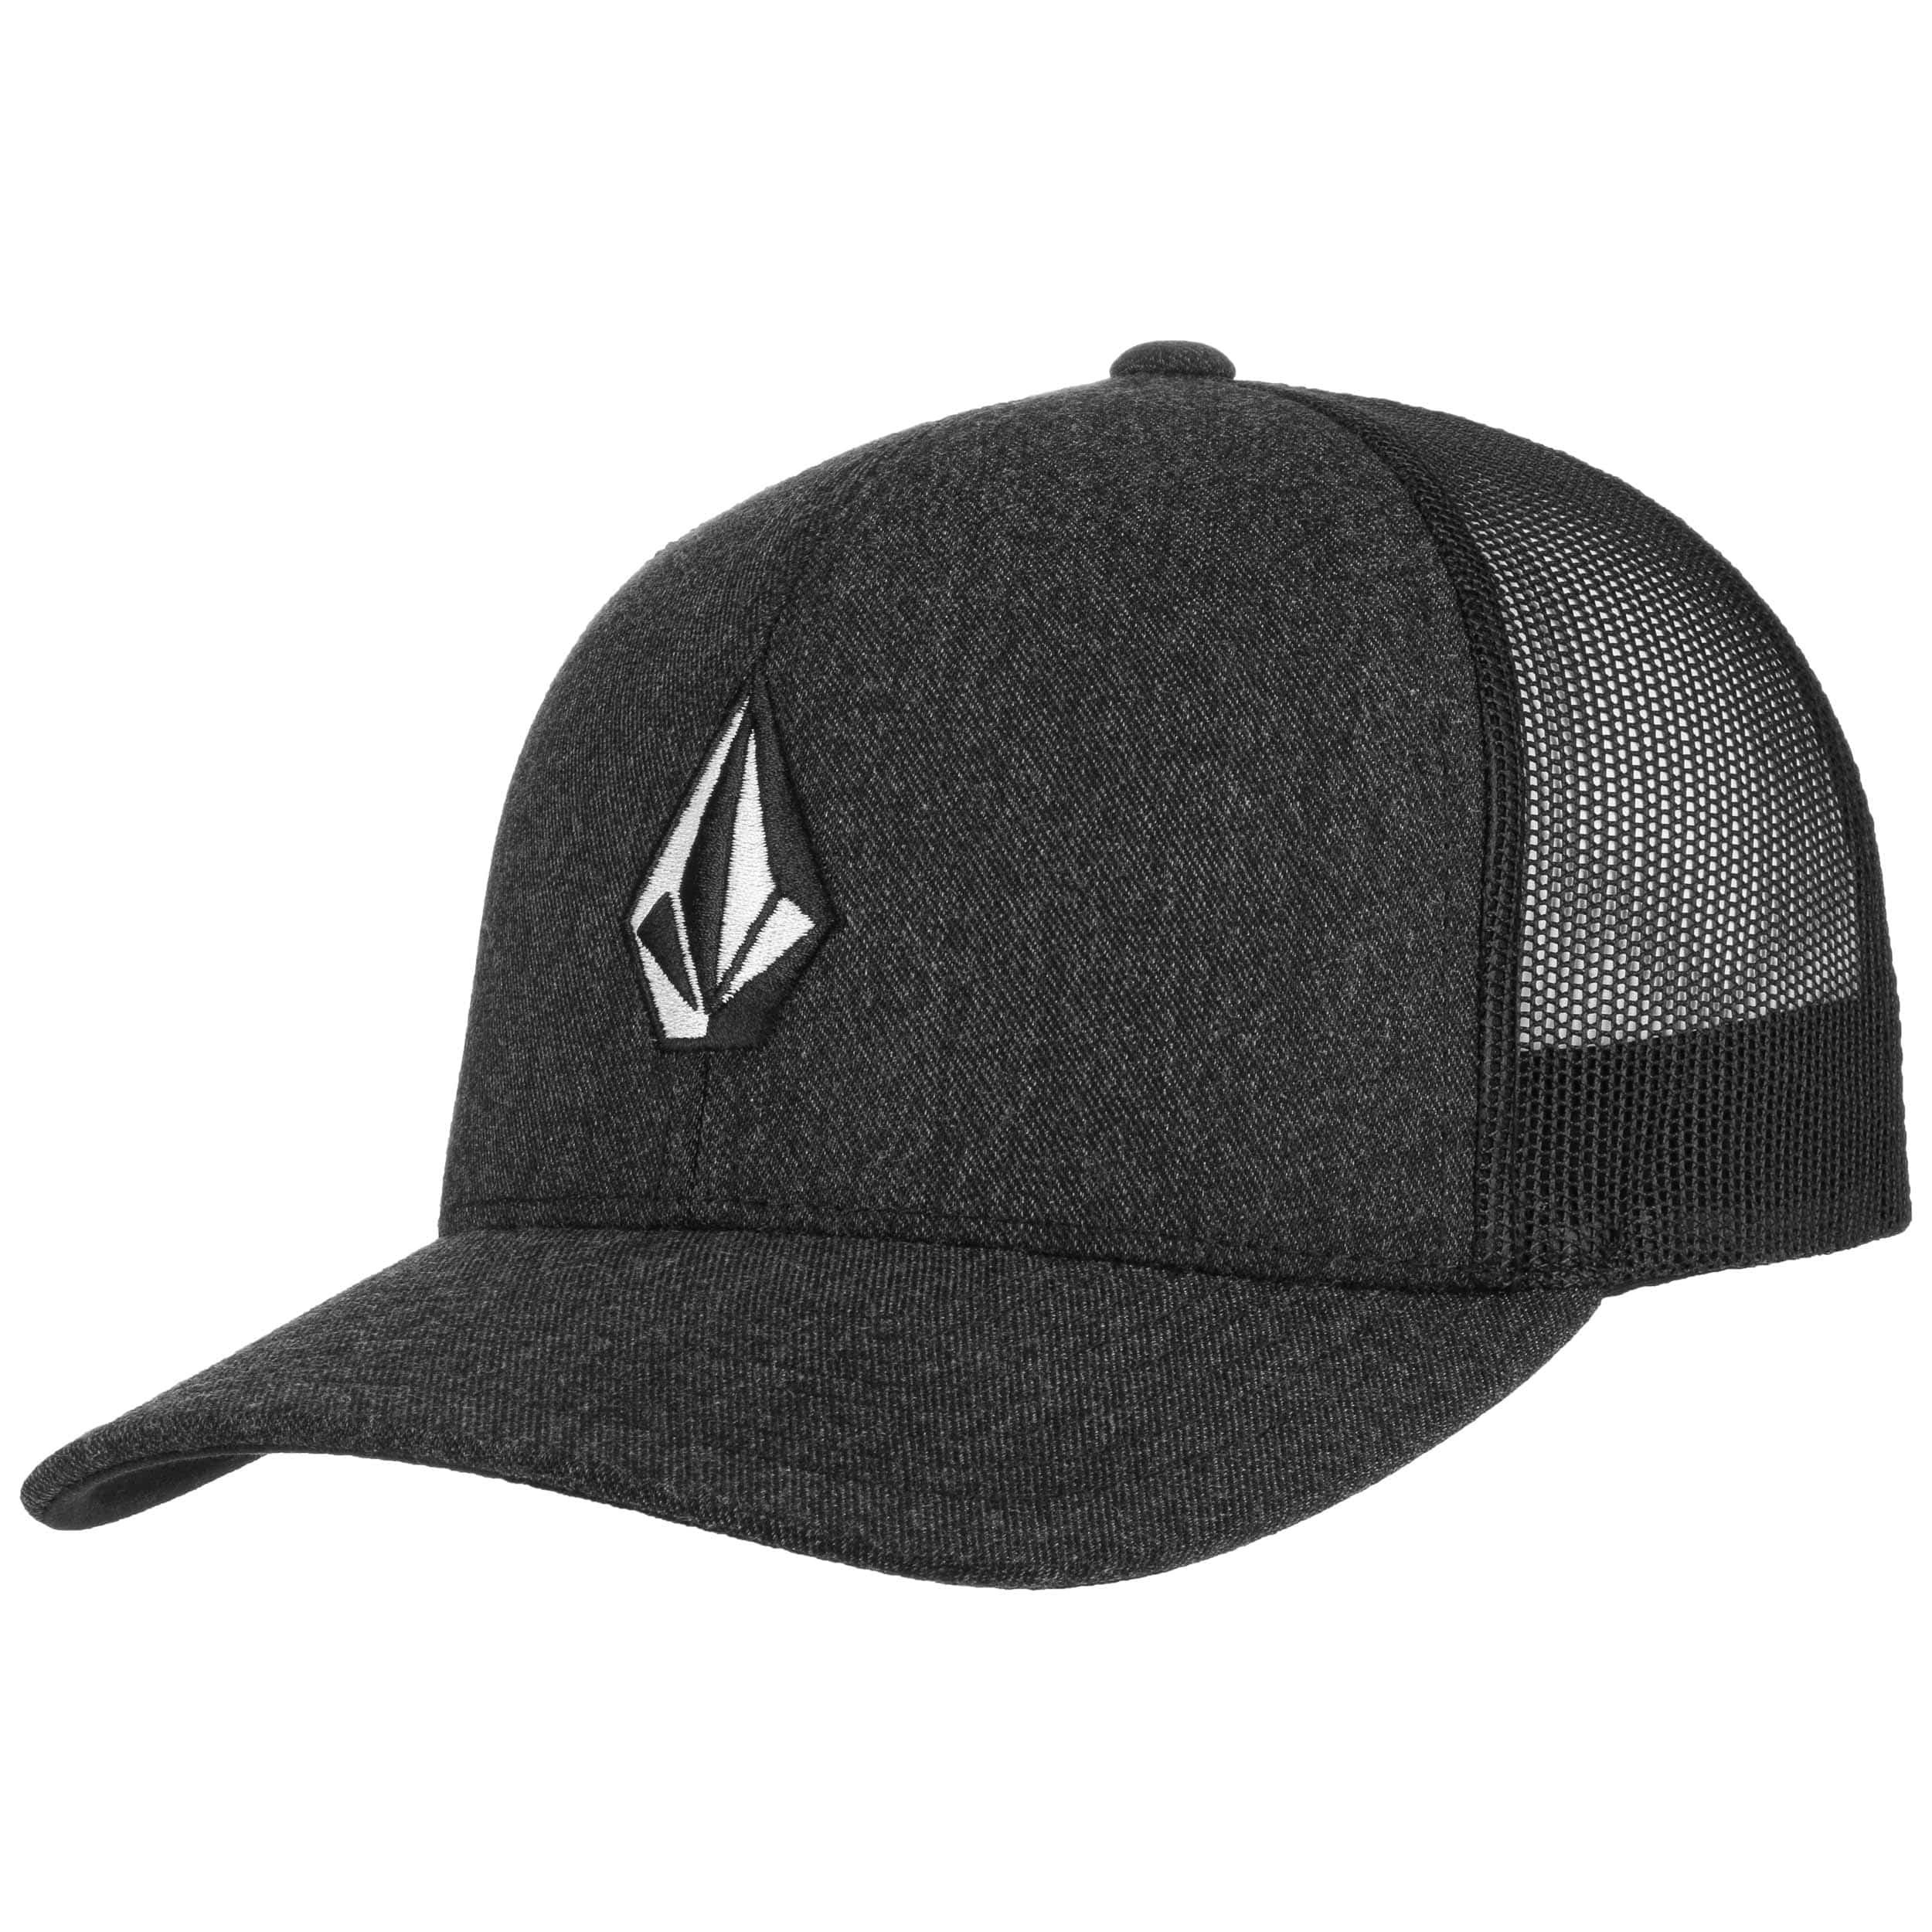 info for 65e2d 40cde ... wholesale full stone trucker cap by volcom anthracite 6 23744 1bacb